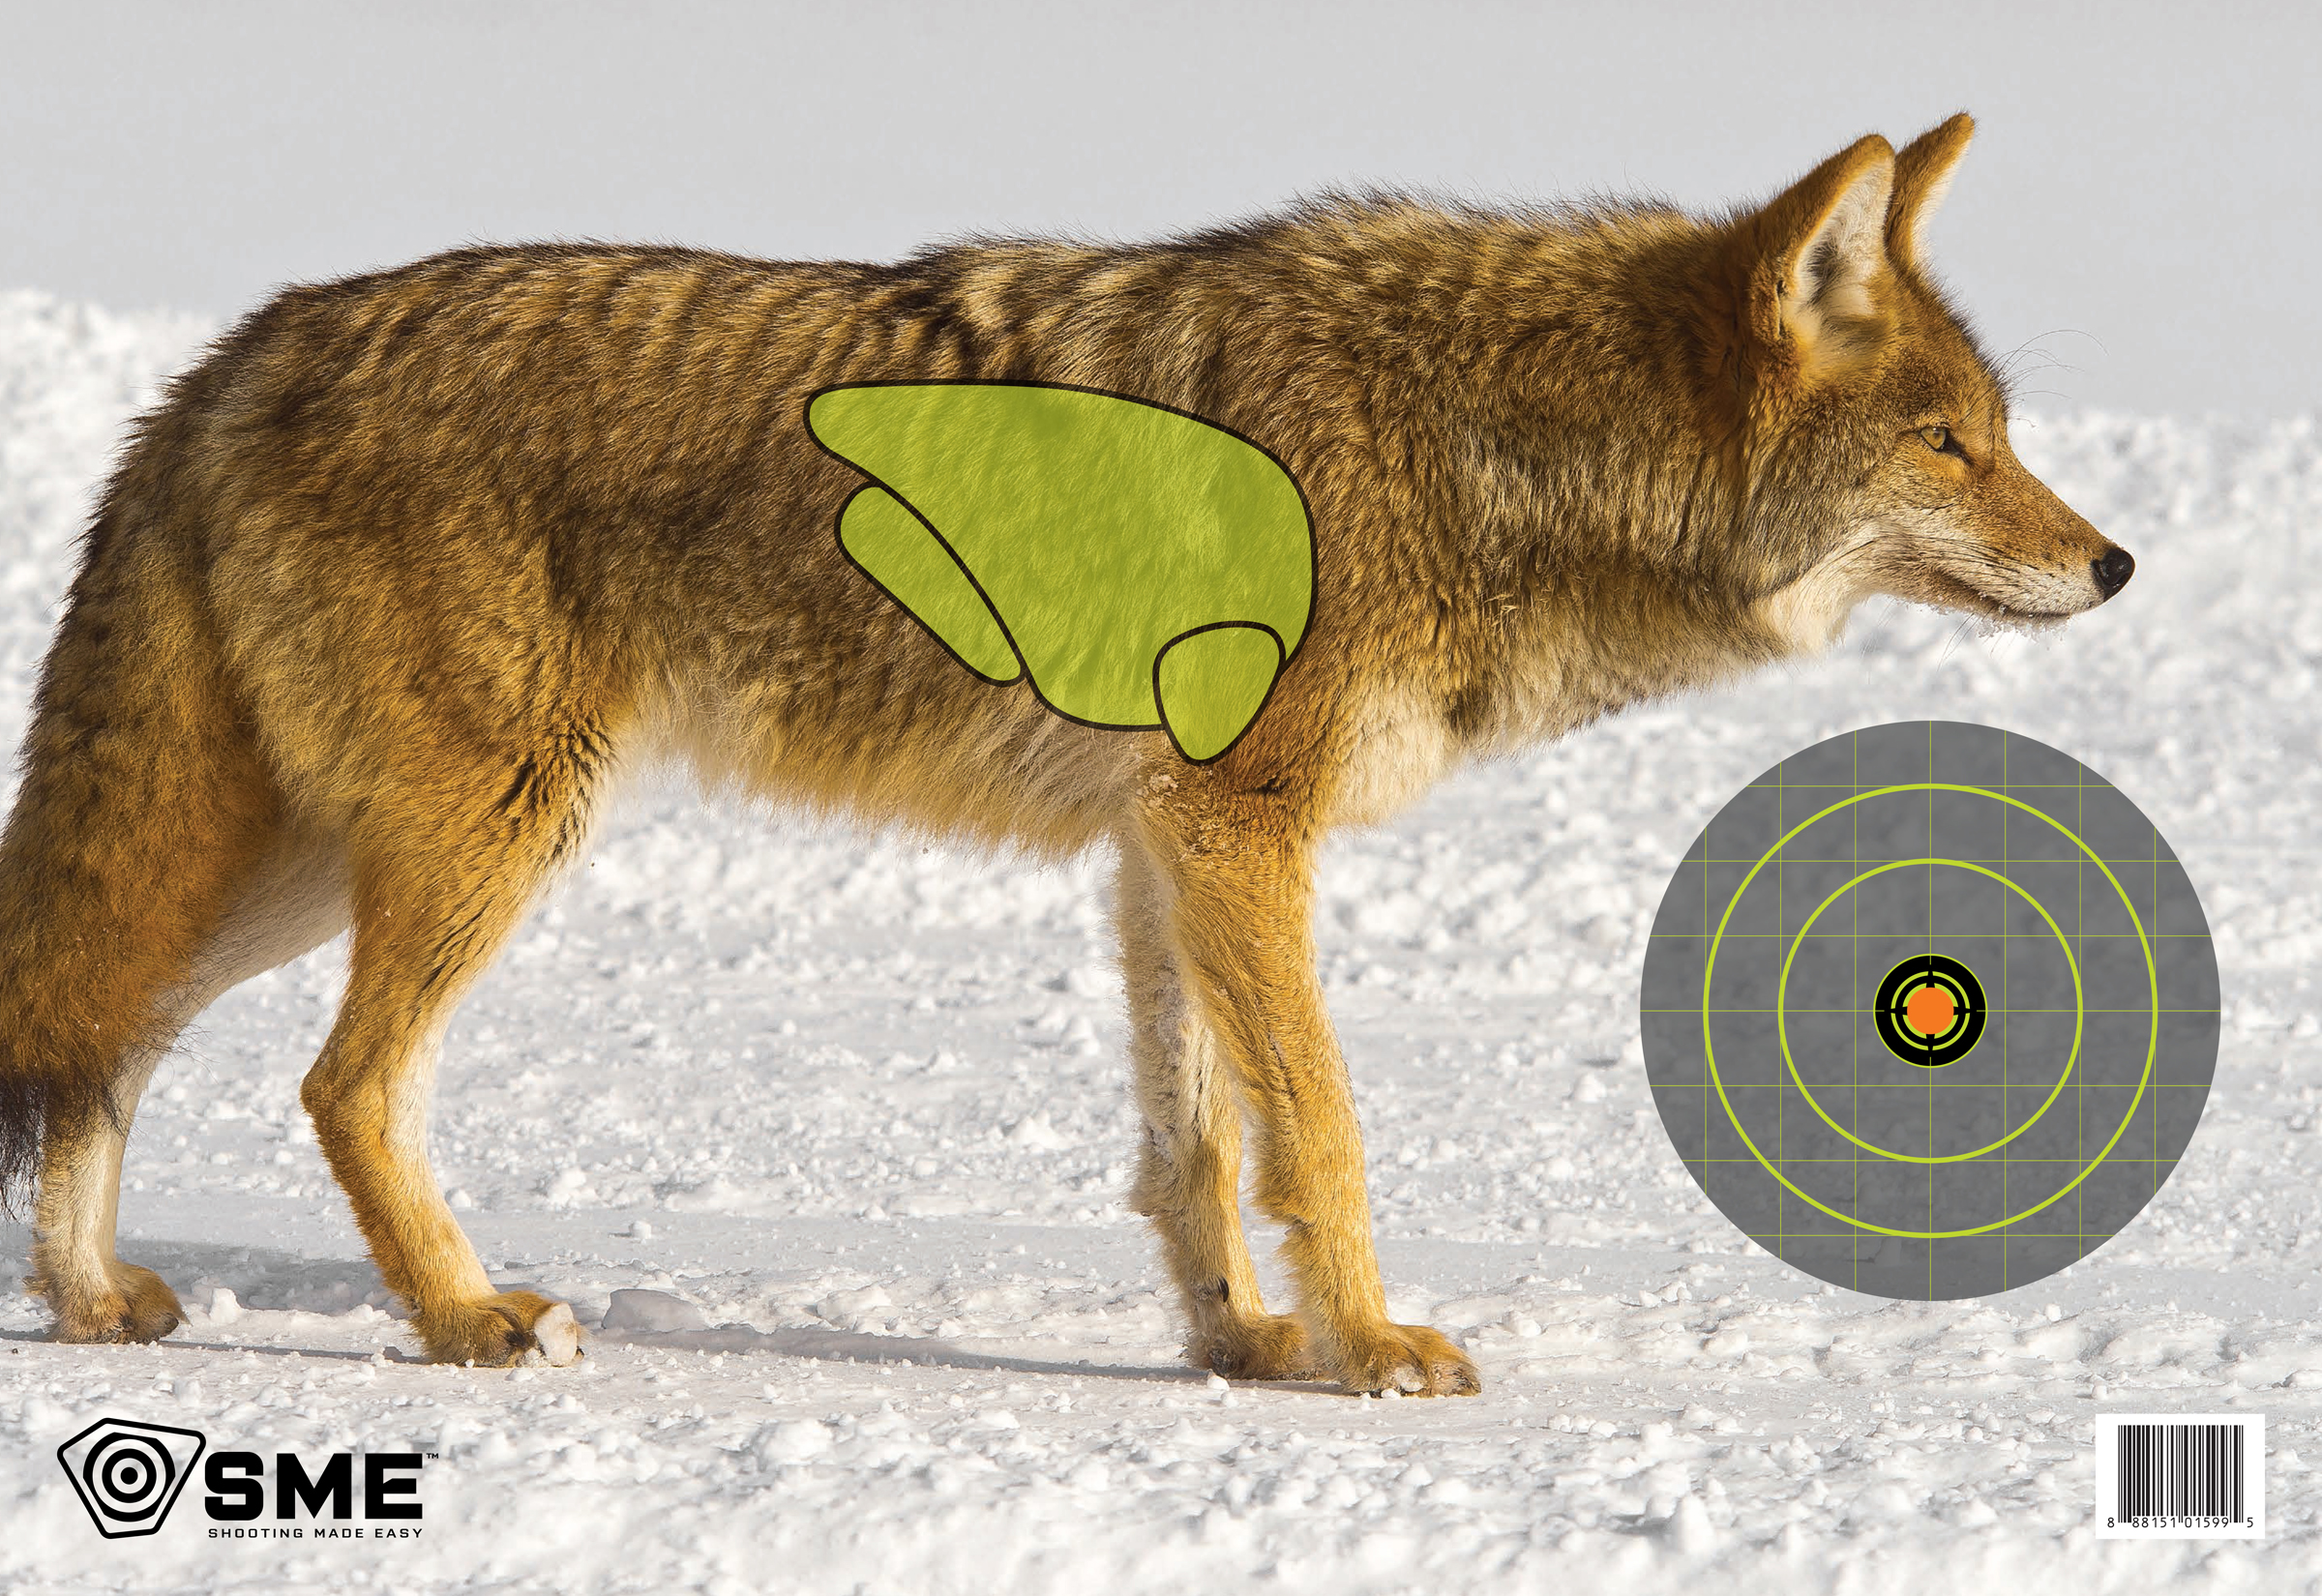 SME SMETRGCOYOTE Coyote Vital Point Target 3 Pack 16.5